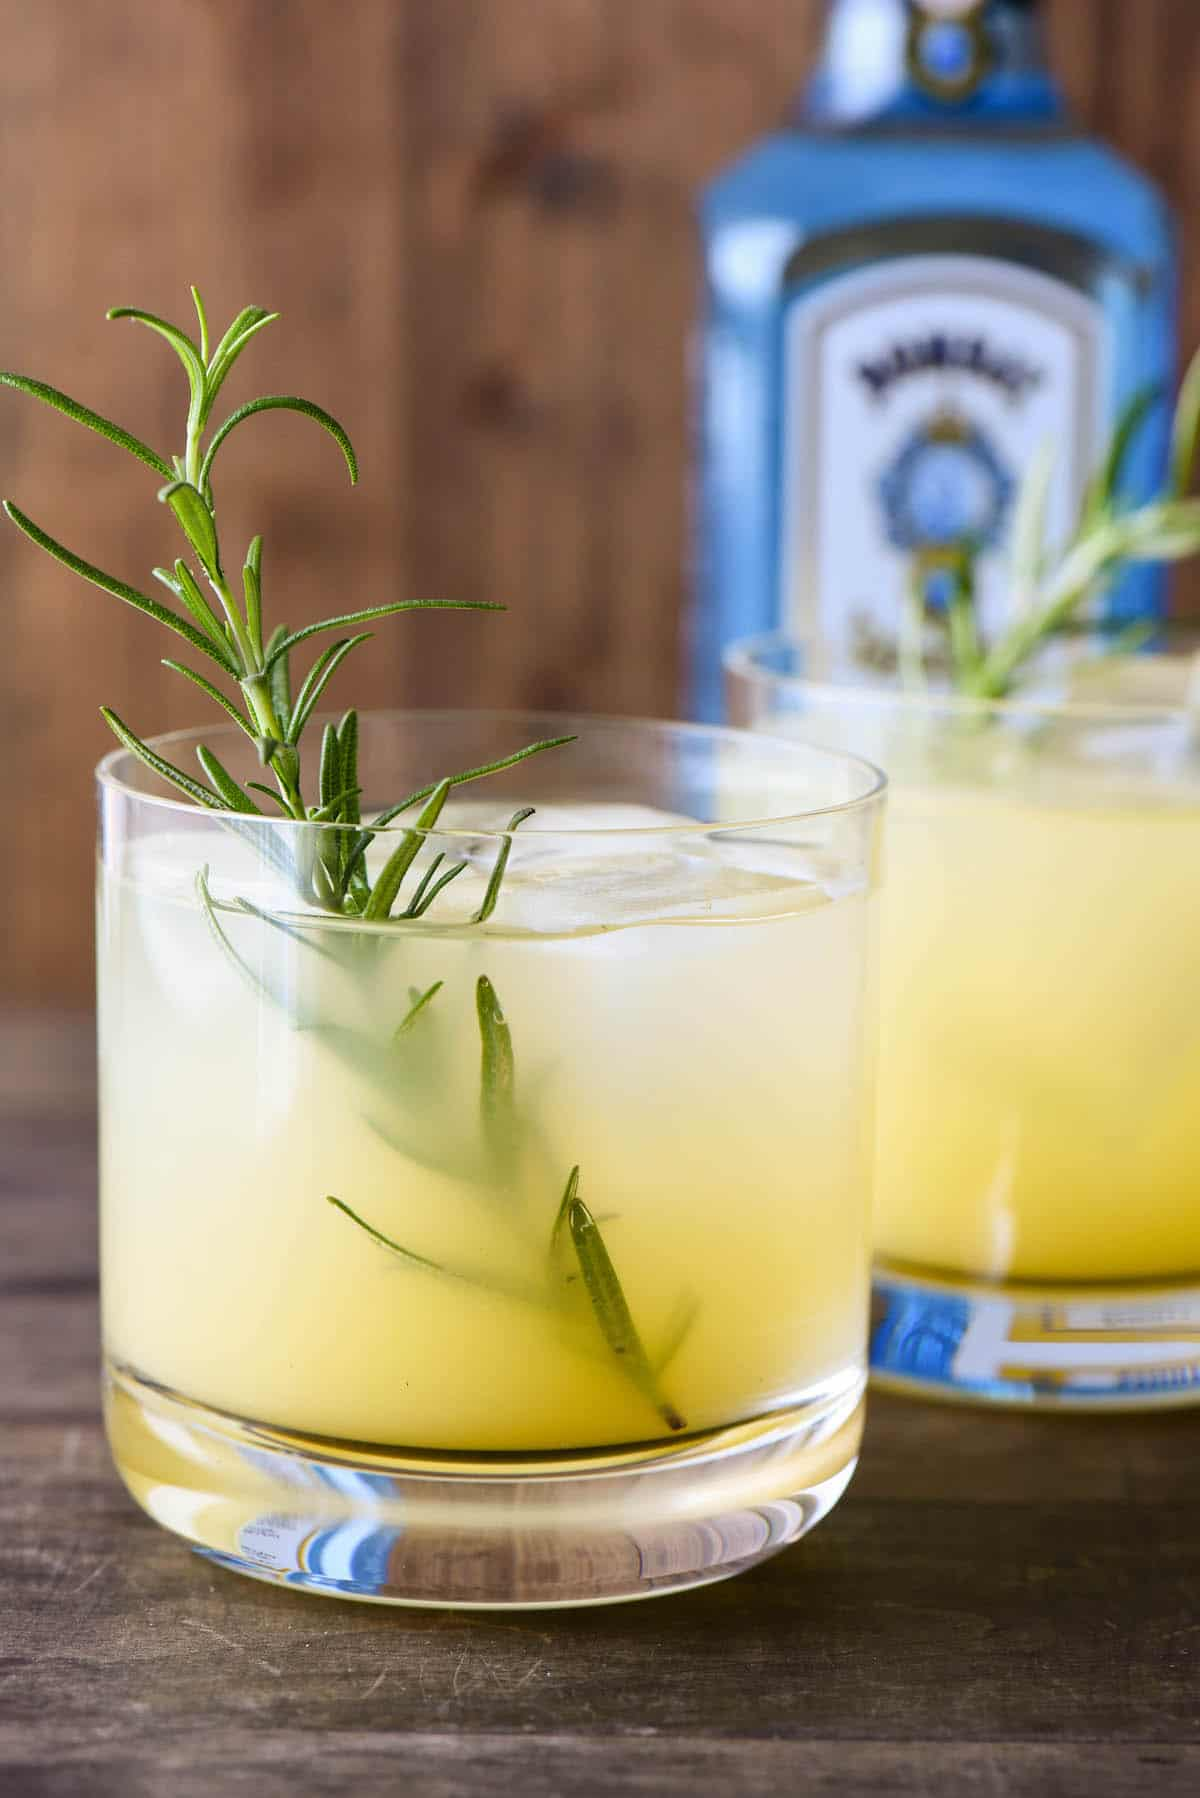 Orange hued rosemary gin cocktail with rosemary sprig garnish, and blue gin bottle in background.